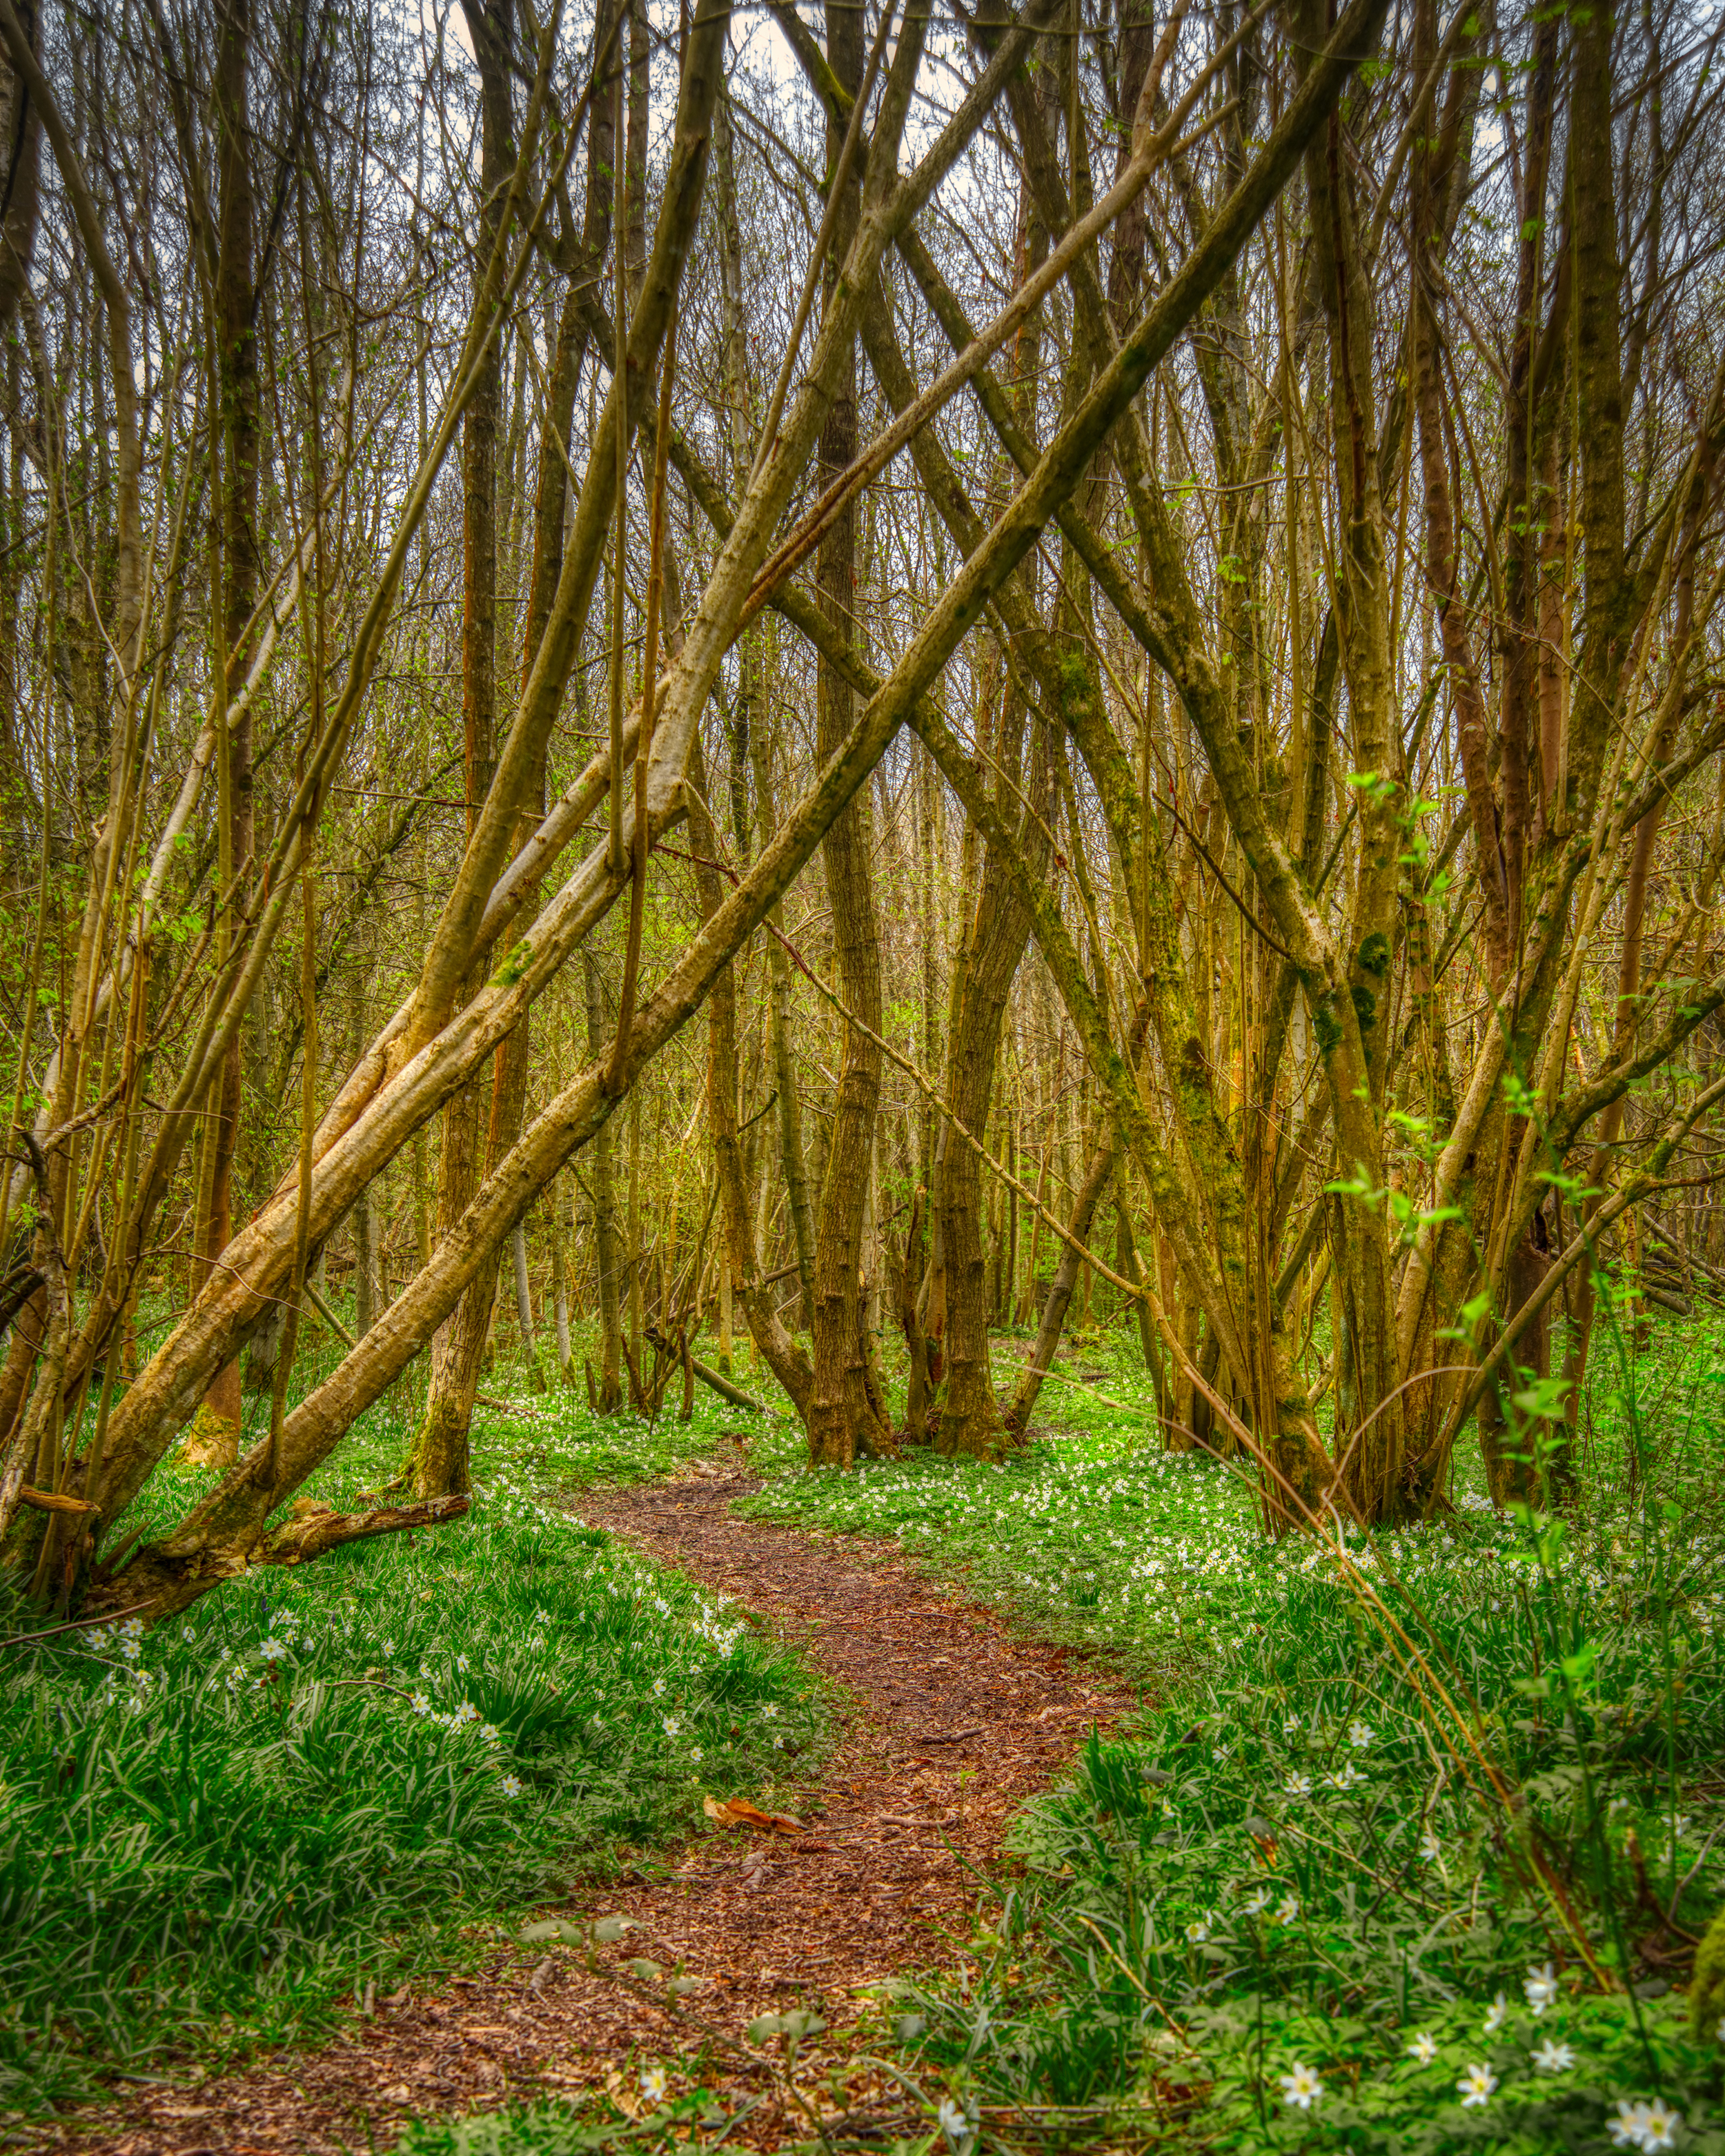 Into The Woodlands    📷 PHOTO INFORMATION    DATE TAKEN  2019-04-06 13:00:31   CAMERA  D610   CAMERA MAKE  NIKON   EXPOSURE TIME  1/25   APERTURE  F/8   ISO  100   FOCAL LENGTH  45MM